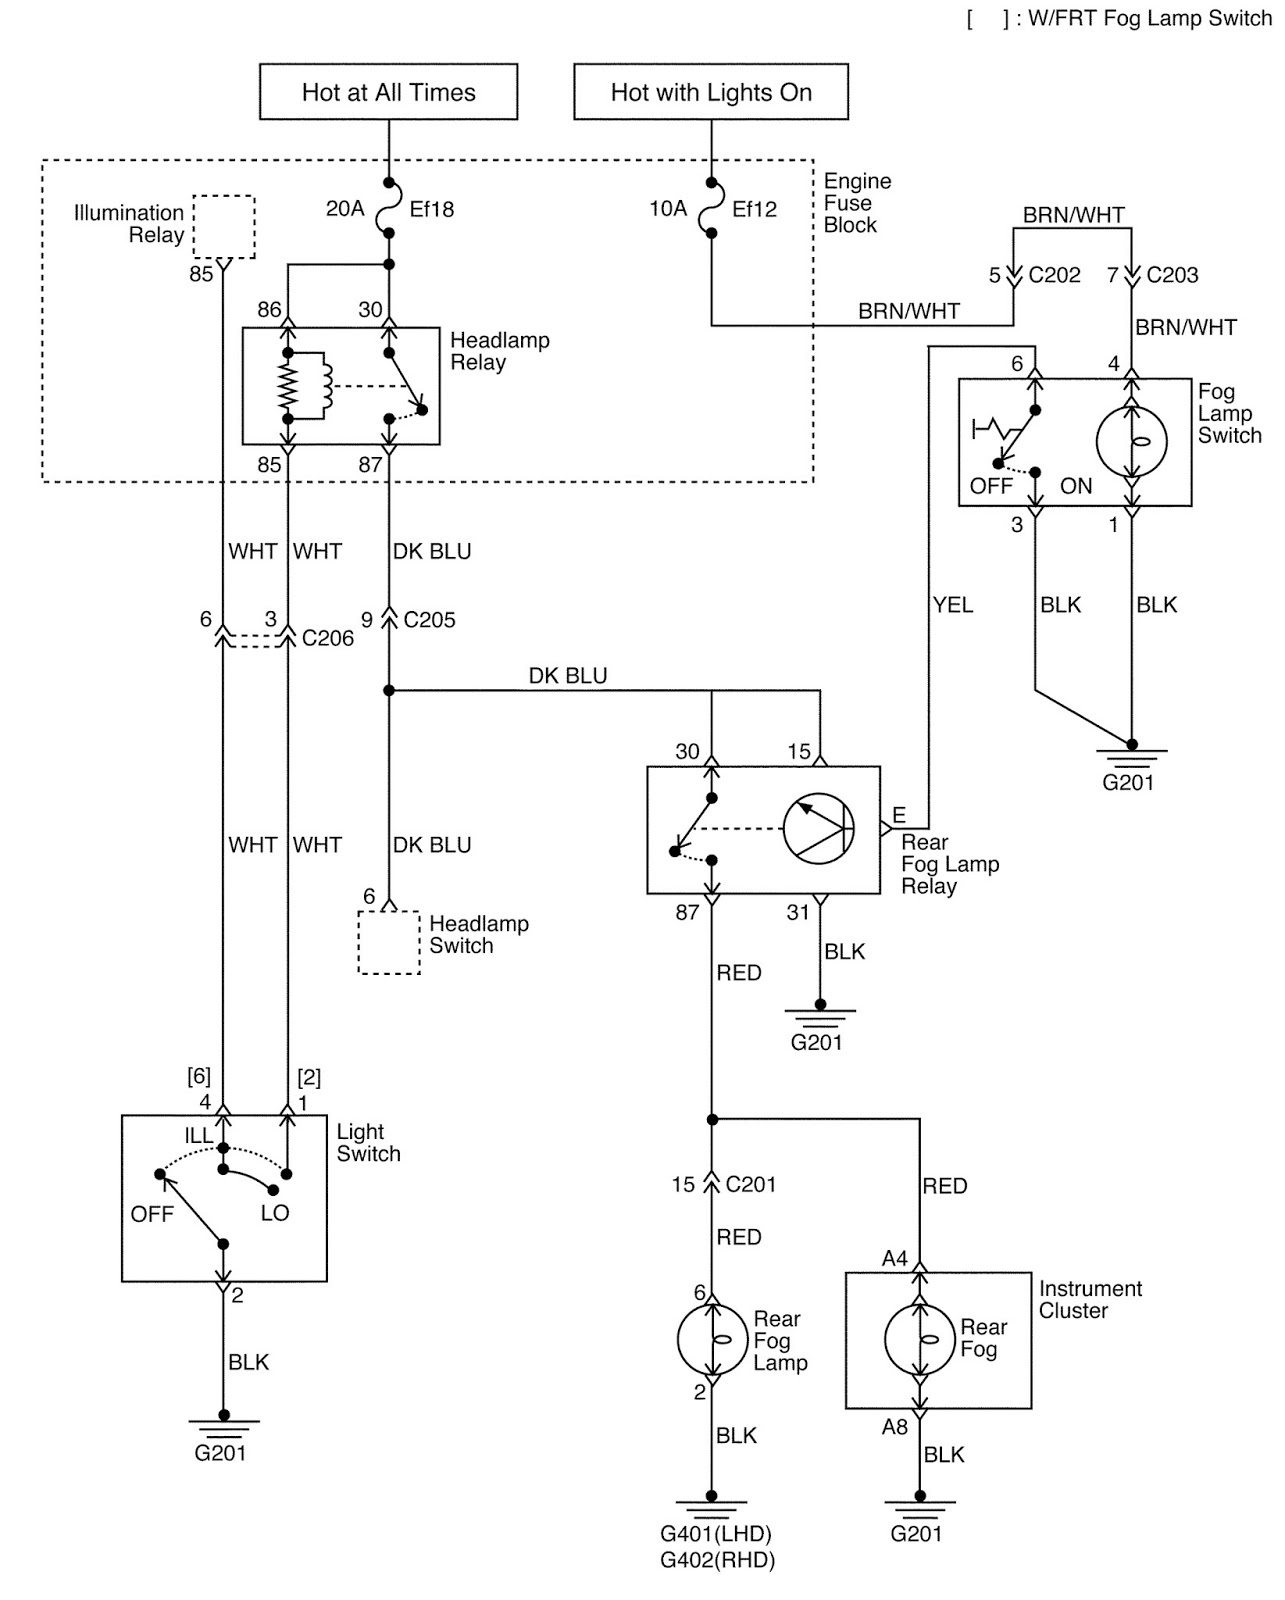 Dimmer control circuit except w europe